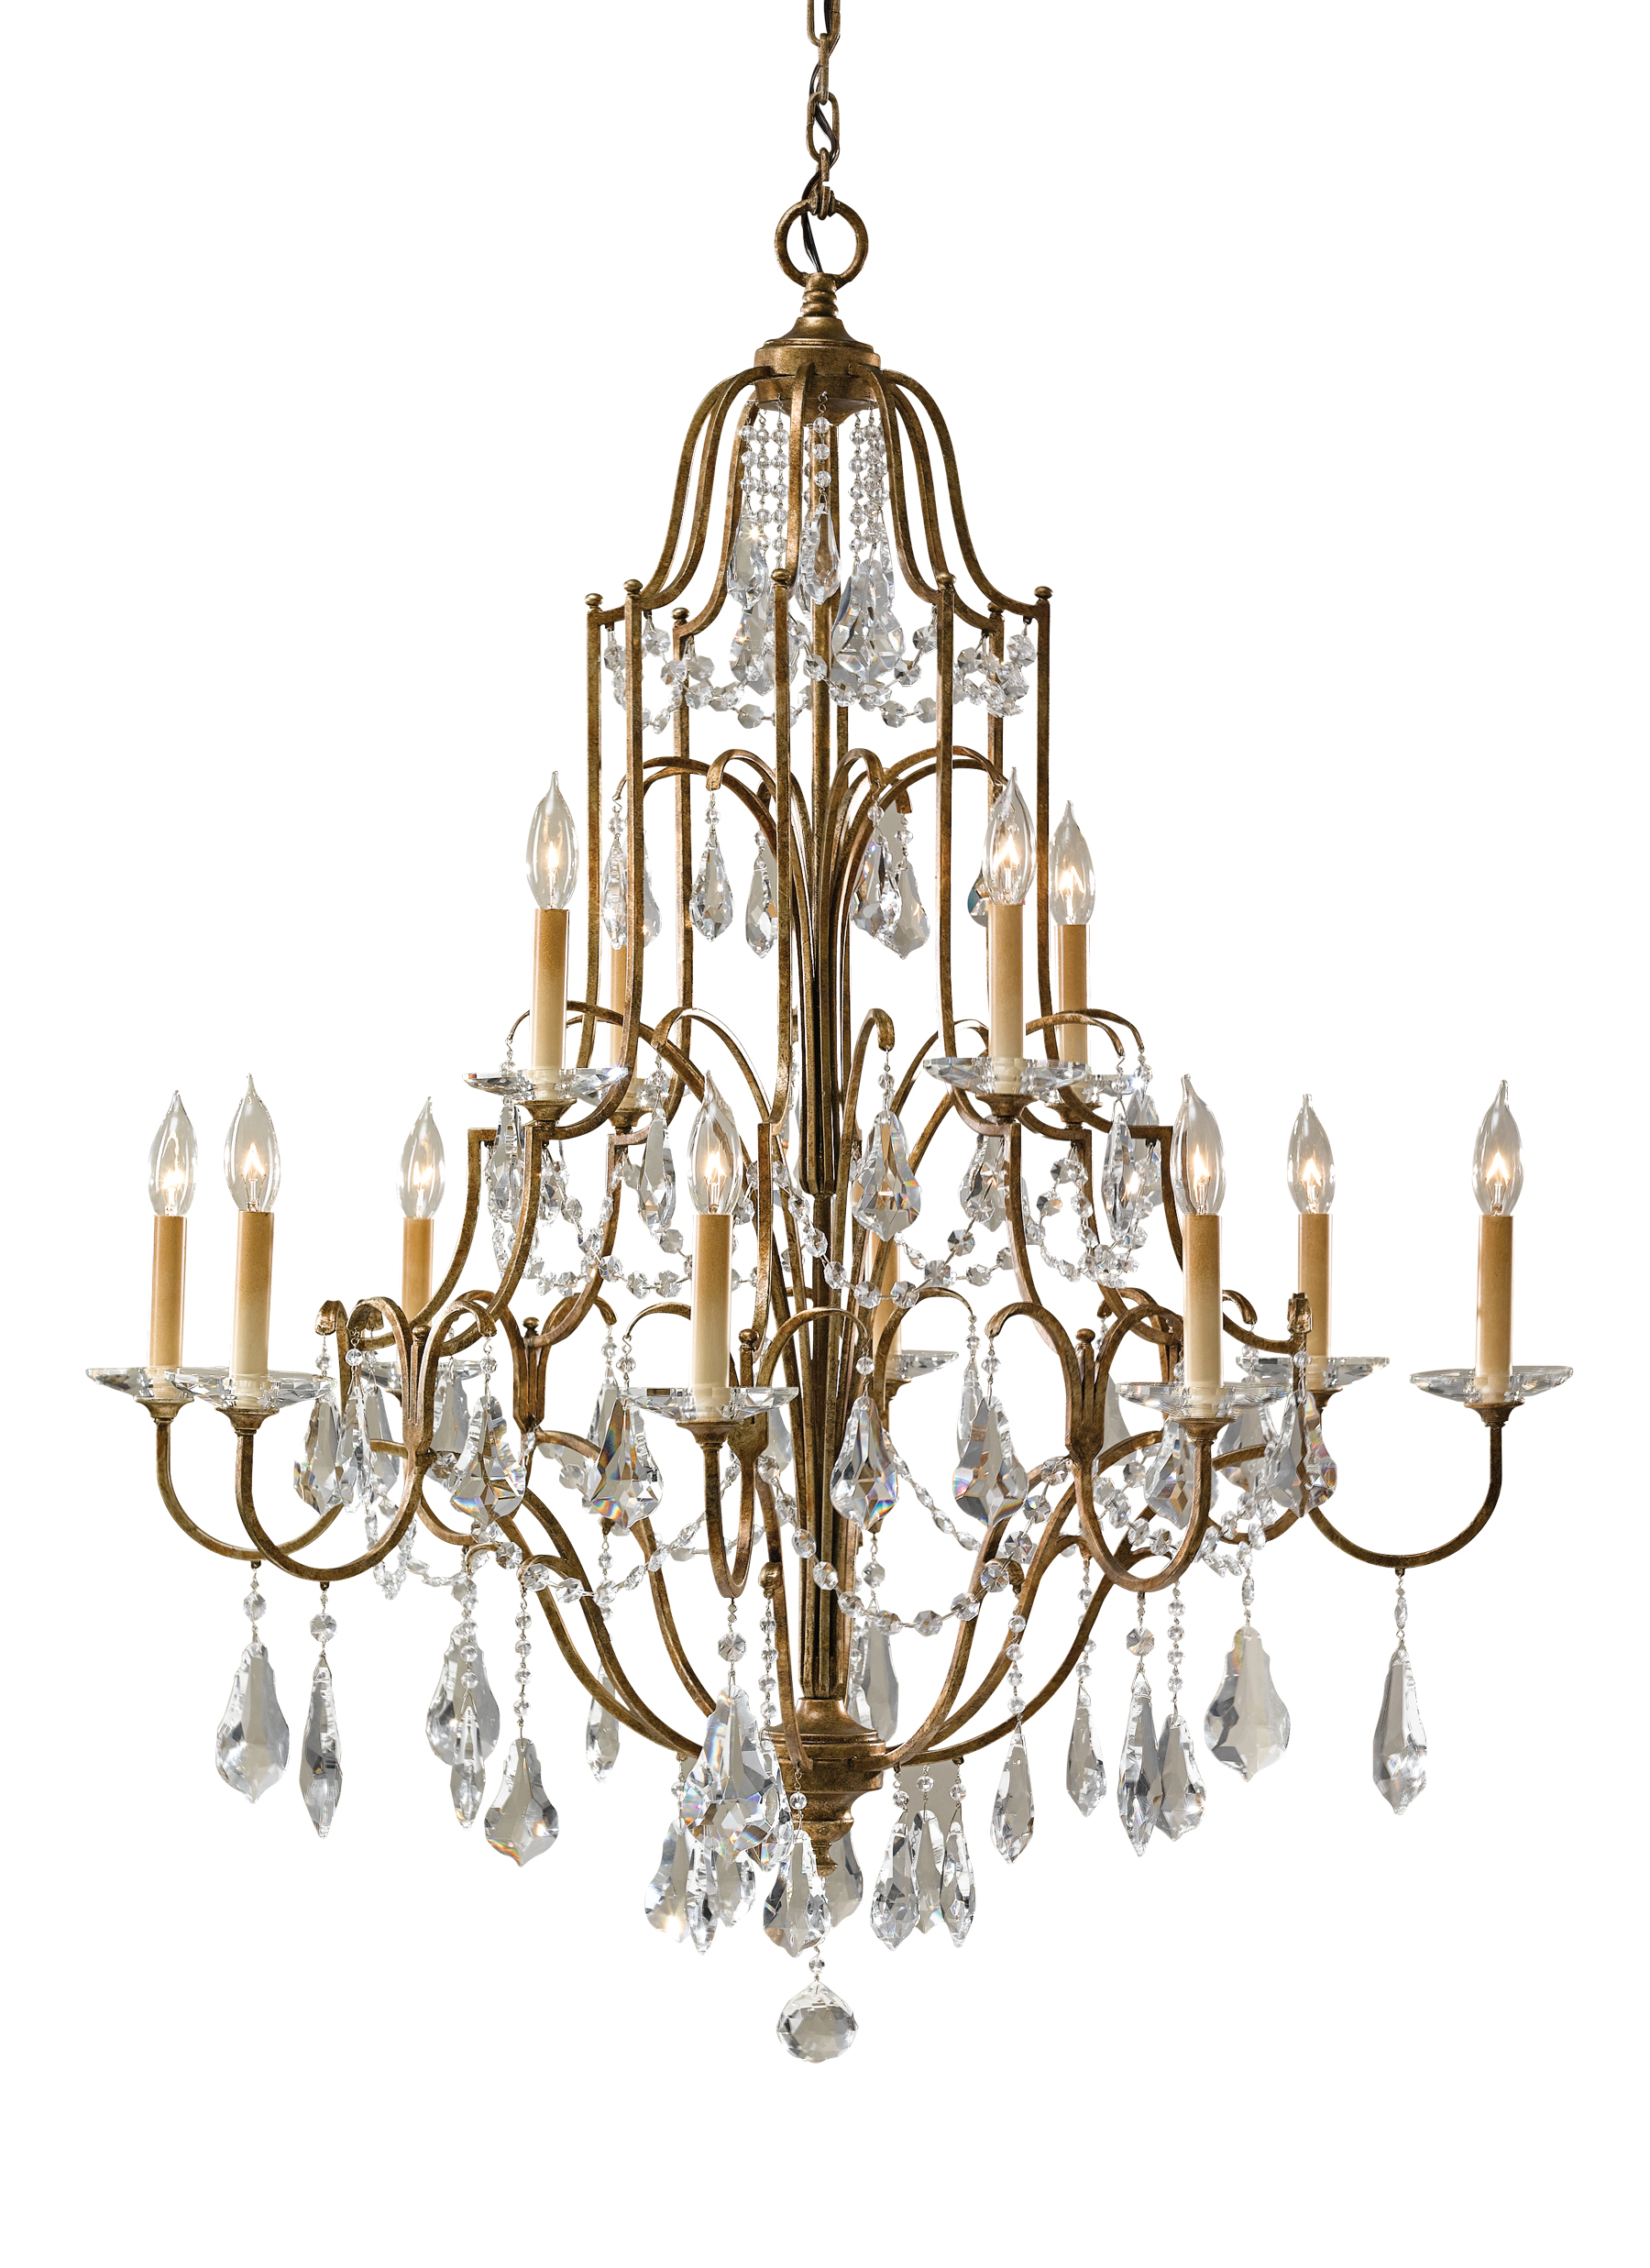 Valentina collection from feiss 12 light multi tier chandelier arubaitofo Image collections